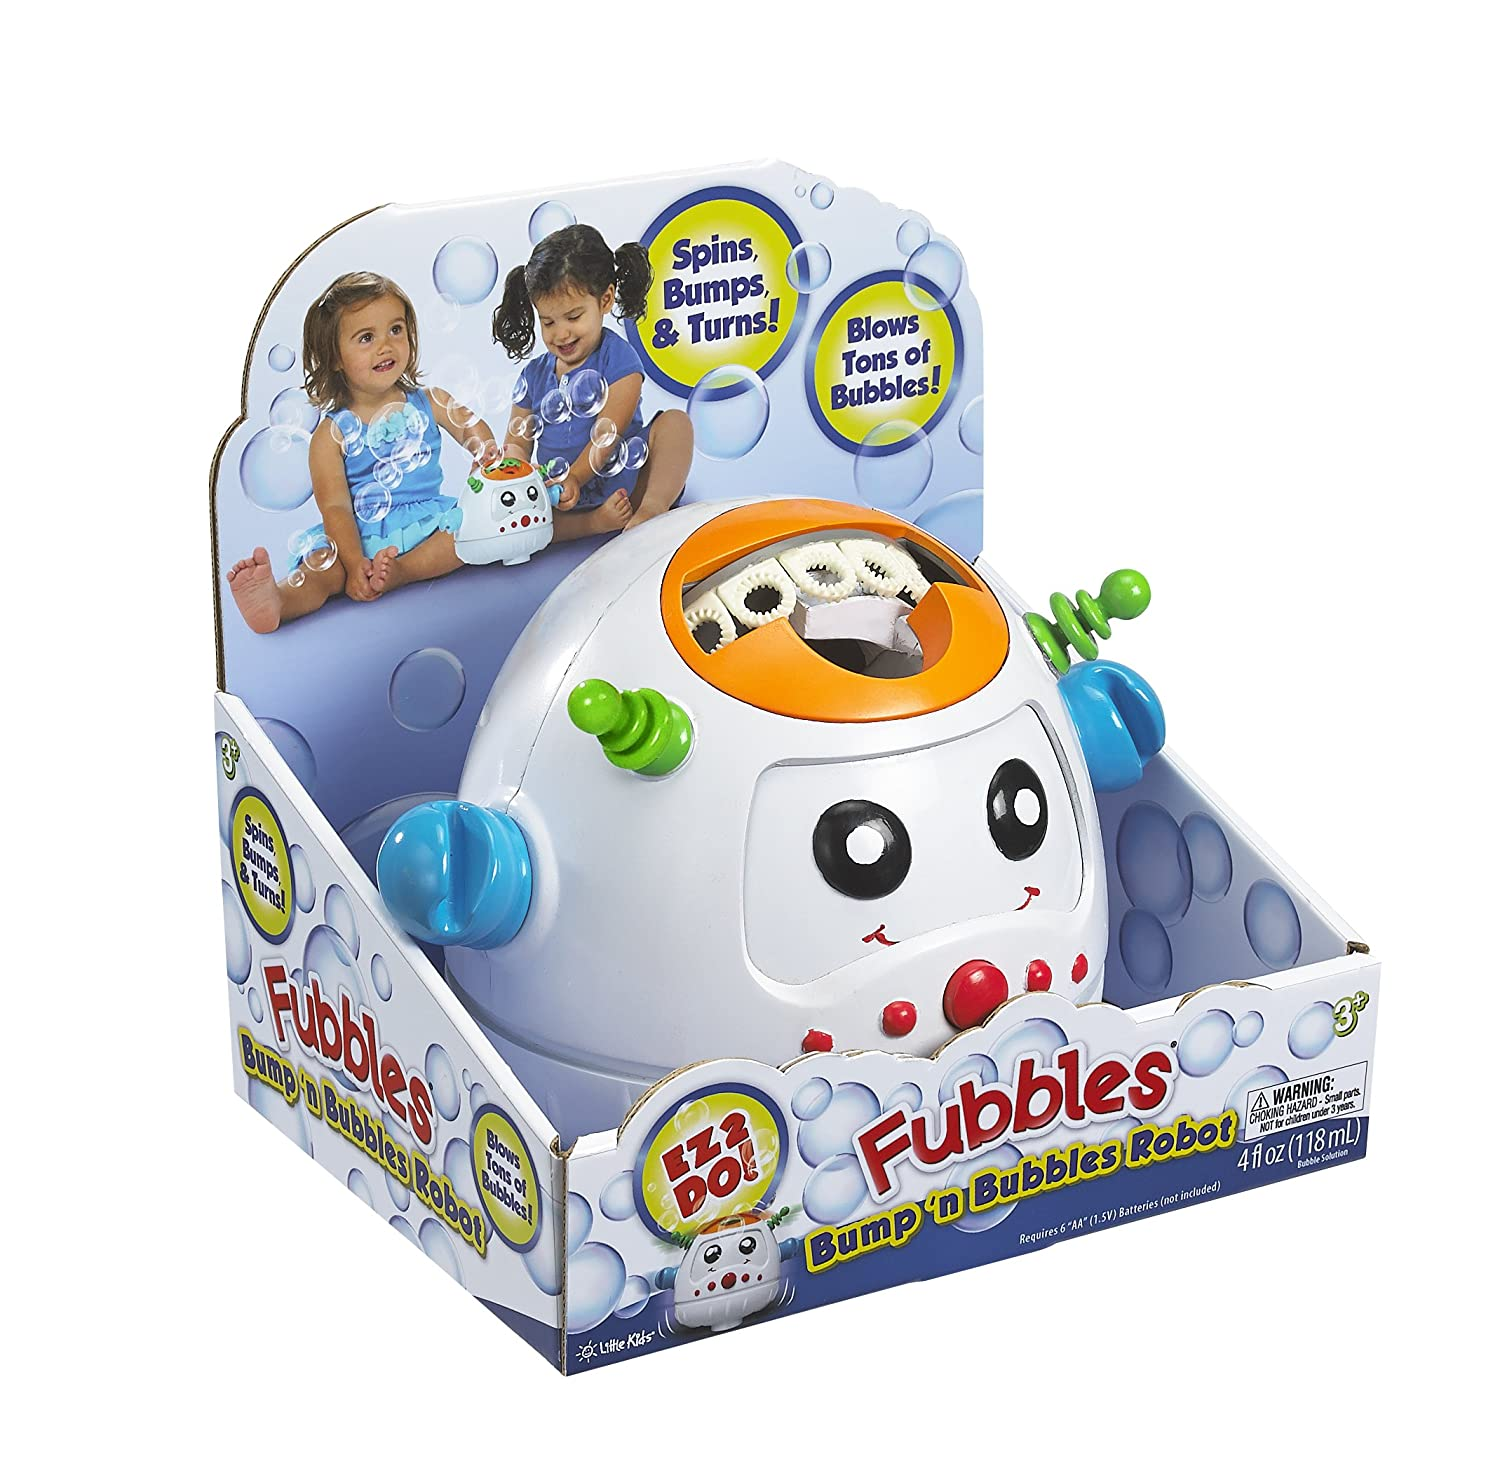 Amazon Little Kids Fubbles Bump n Bubble Robot Toys & Games